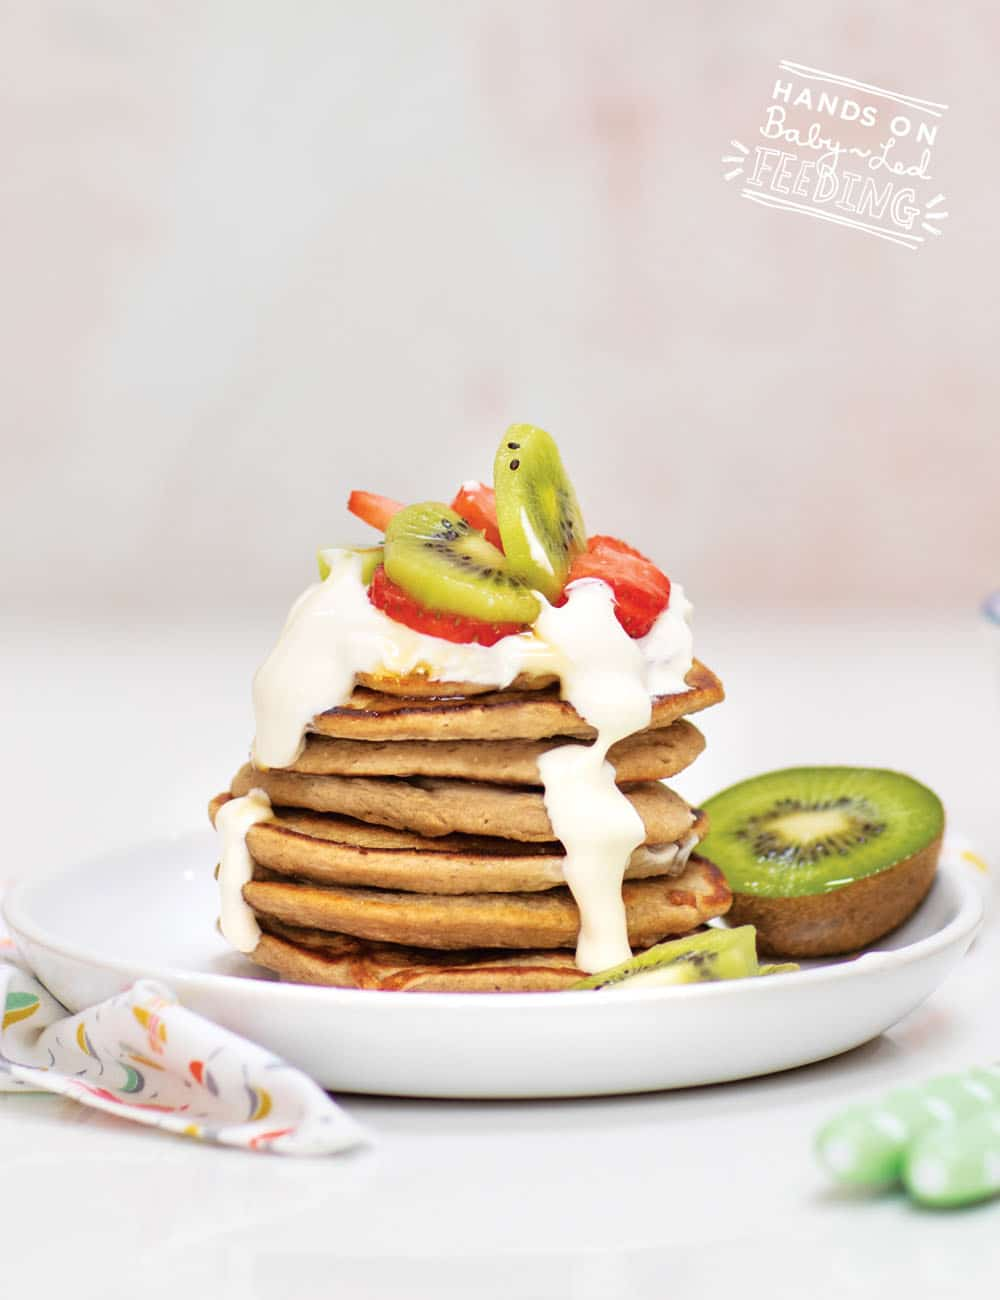 Baby Led Feeding Oat and Banana Pancakes with Yogurt Recipe Images2